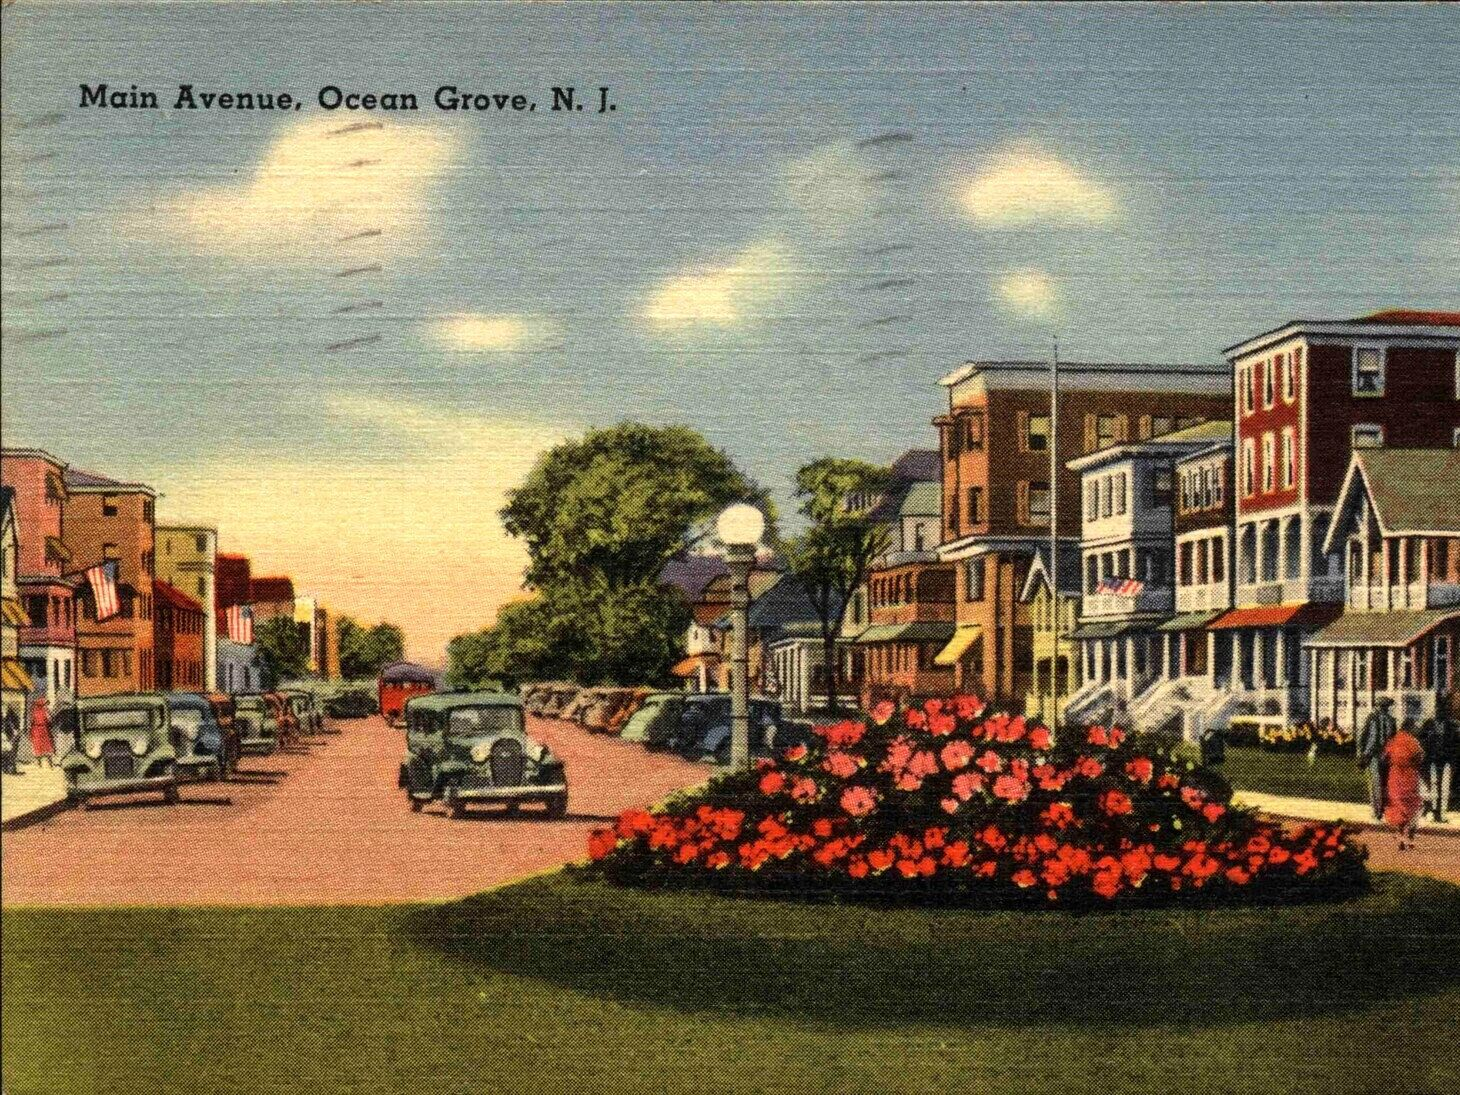 Ocean Grove NJ, New Jersey, Main Avenue, c1940s Vintage Modern Greeting Card NCC000573 by markopostcards on Etsy